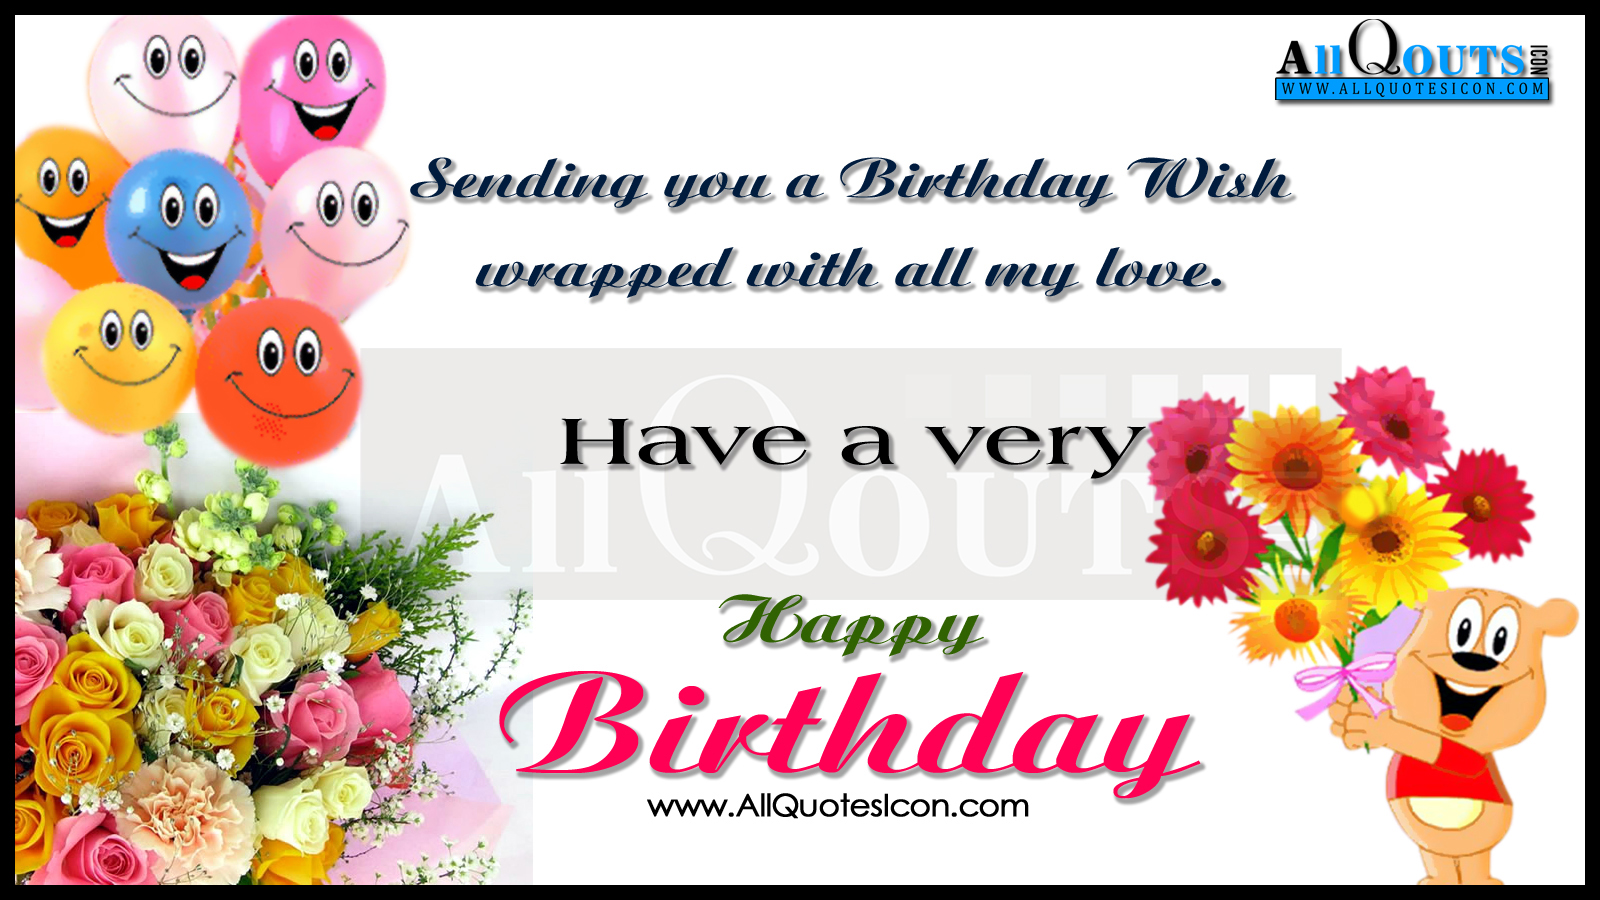 happy birthday images with thoughts ; birthday-wallpapers-with-thoughts%2525284%252529